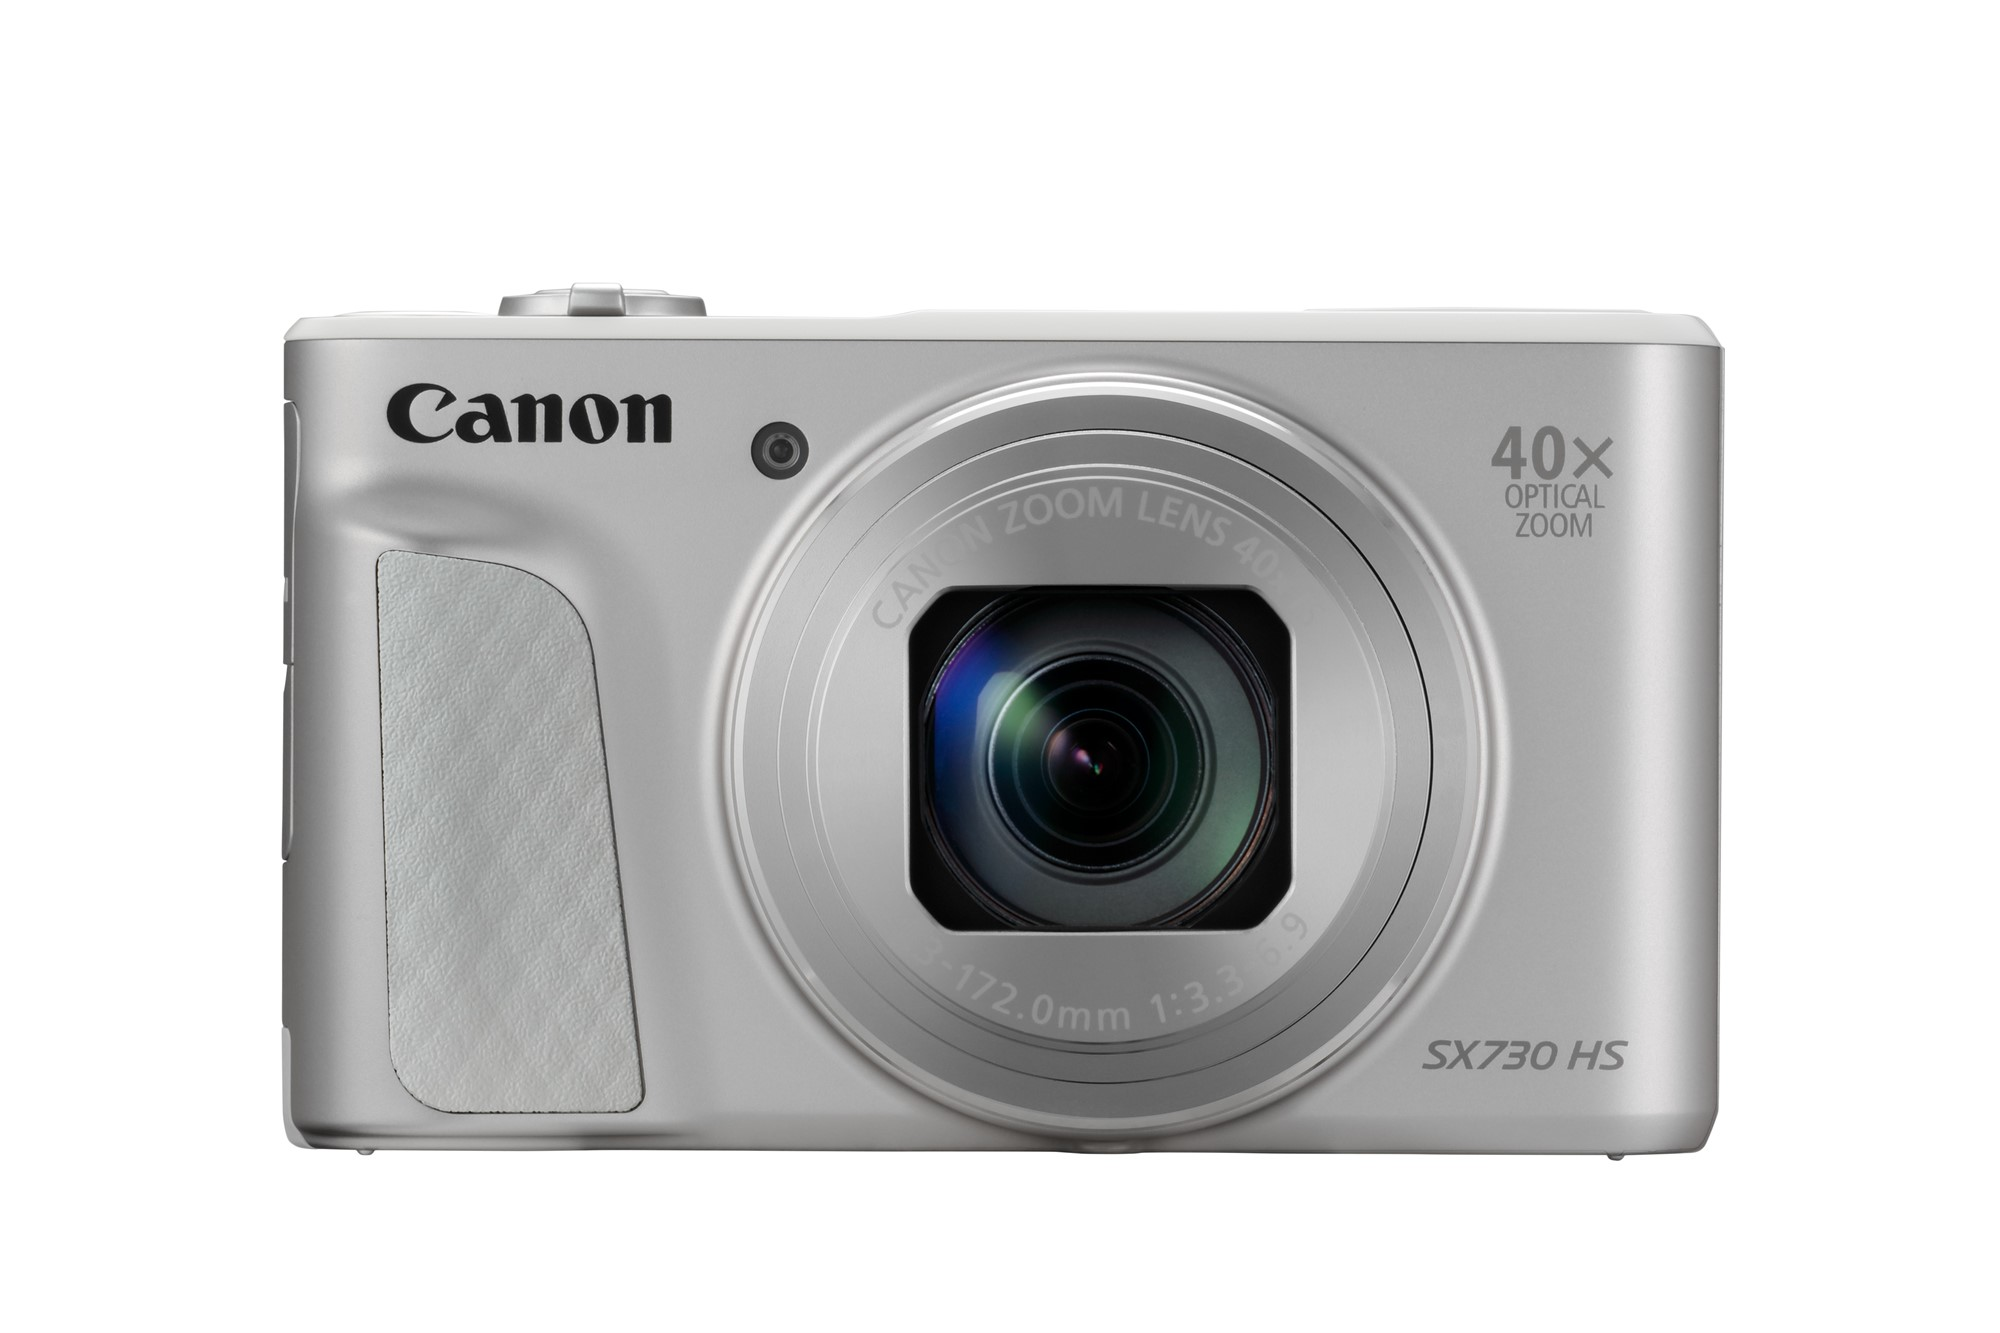 CANON POWERSHOT SX730 HS COMPACT CAMERA 20.3MP 1/2.3